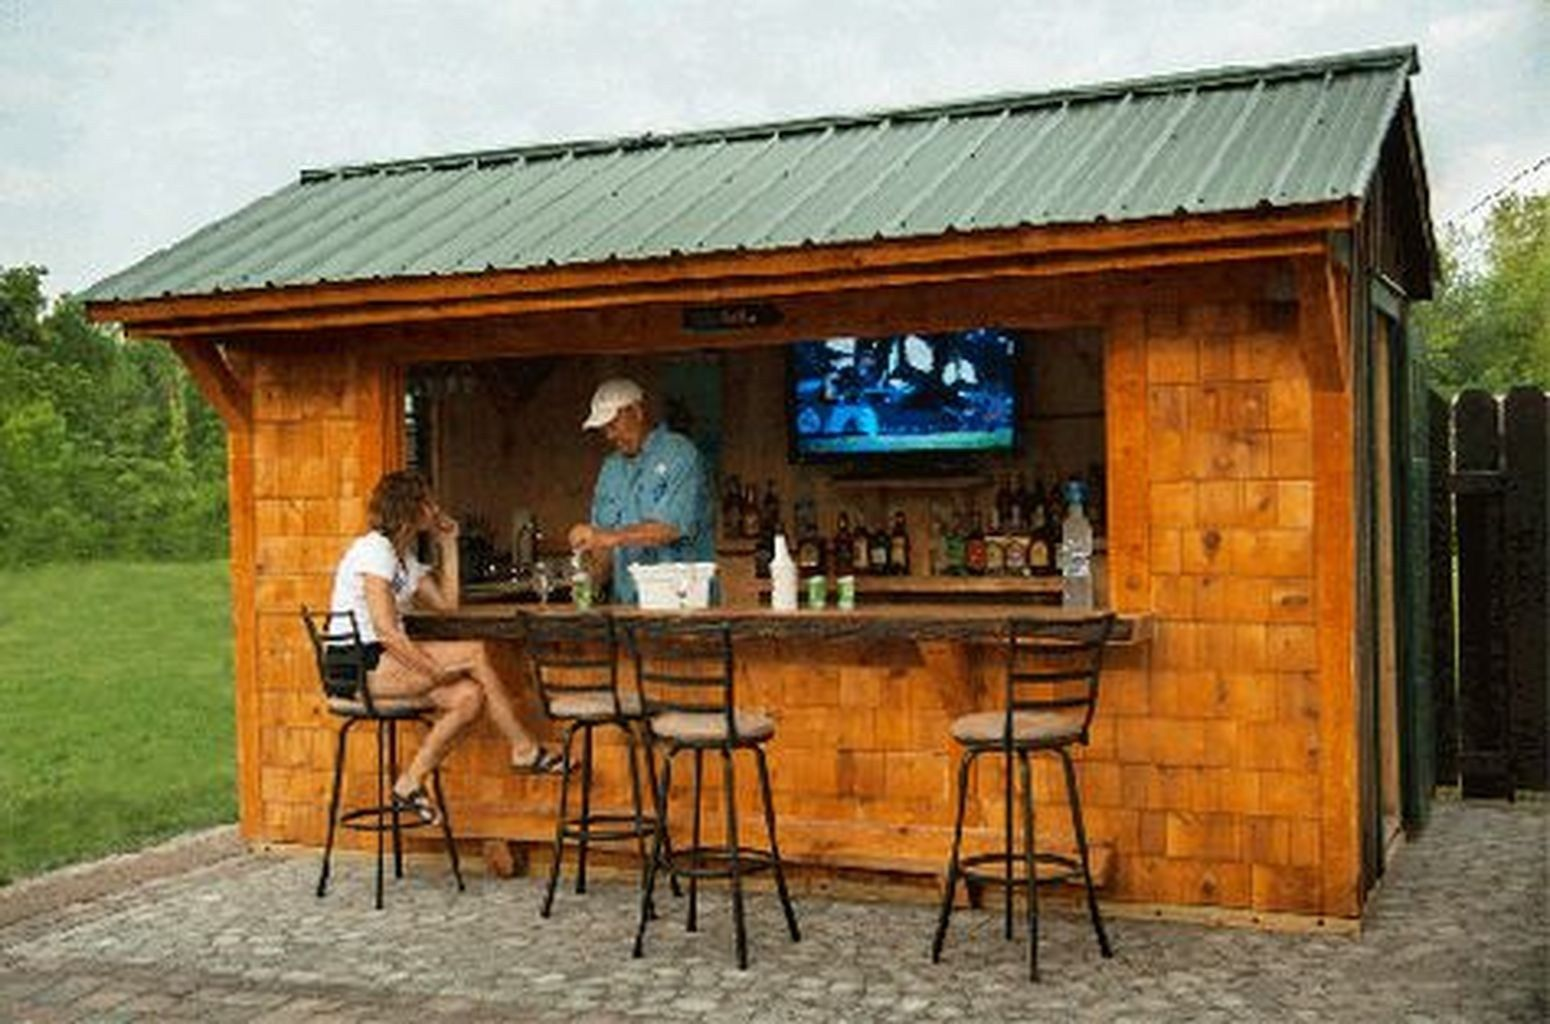 creative beer shed decoration ideas 45 backyard bar pub on extraordinary unique small storage shed ideas for your garden little plans for building id=91381